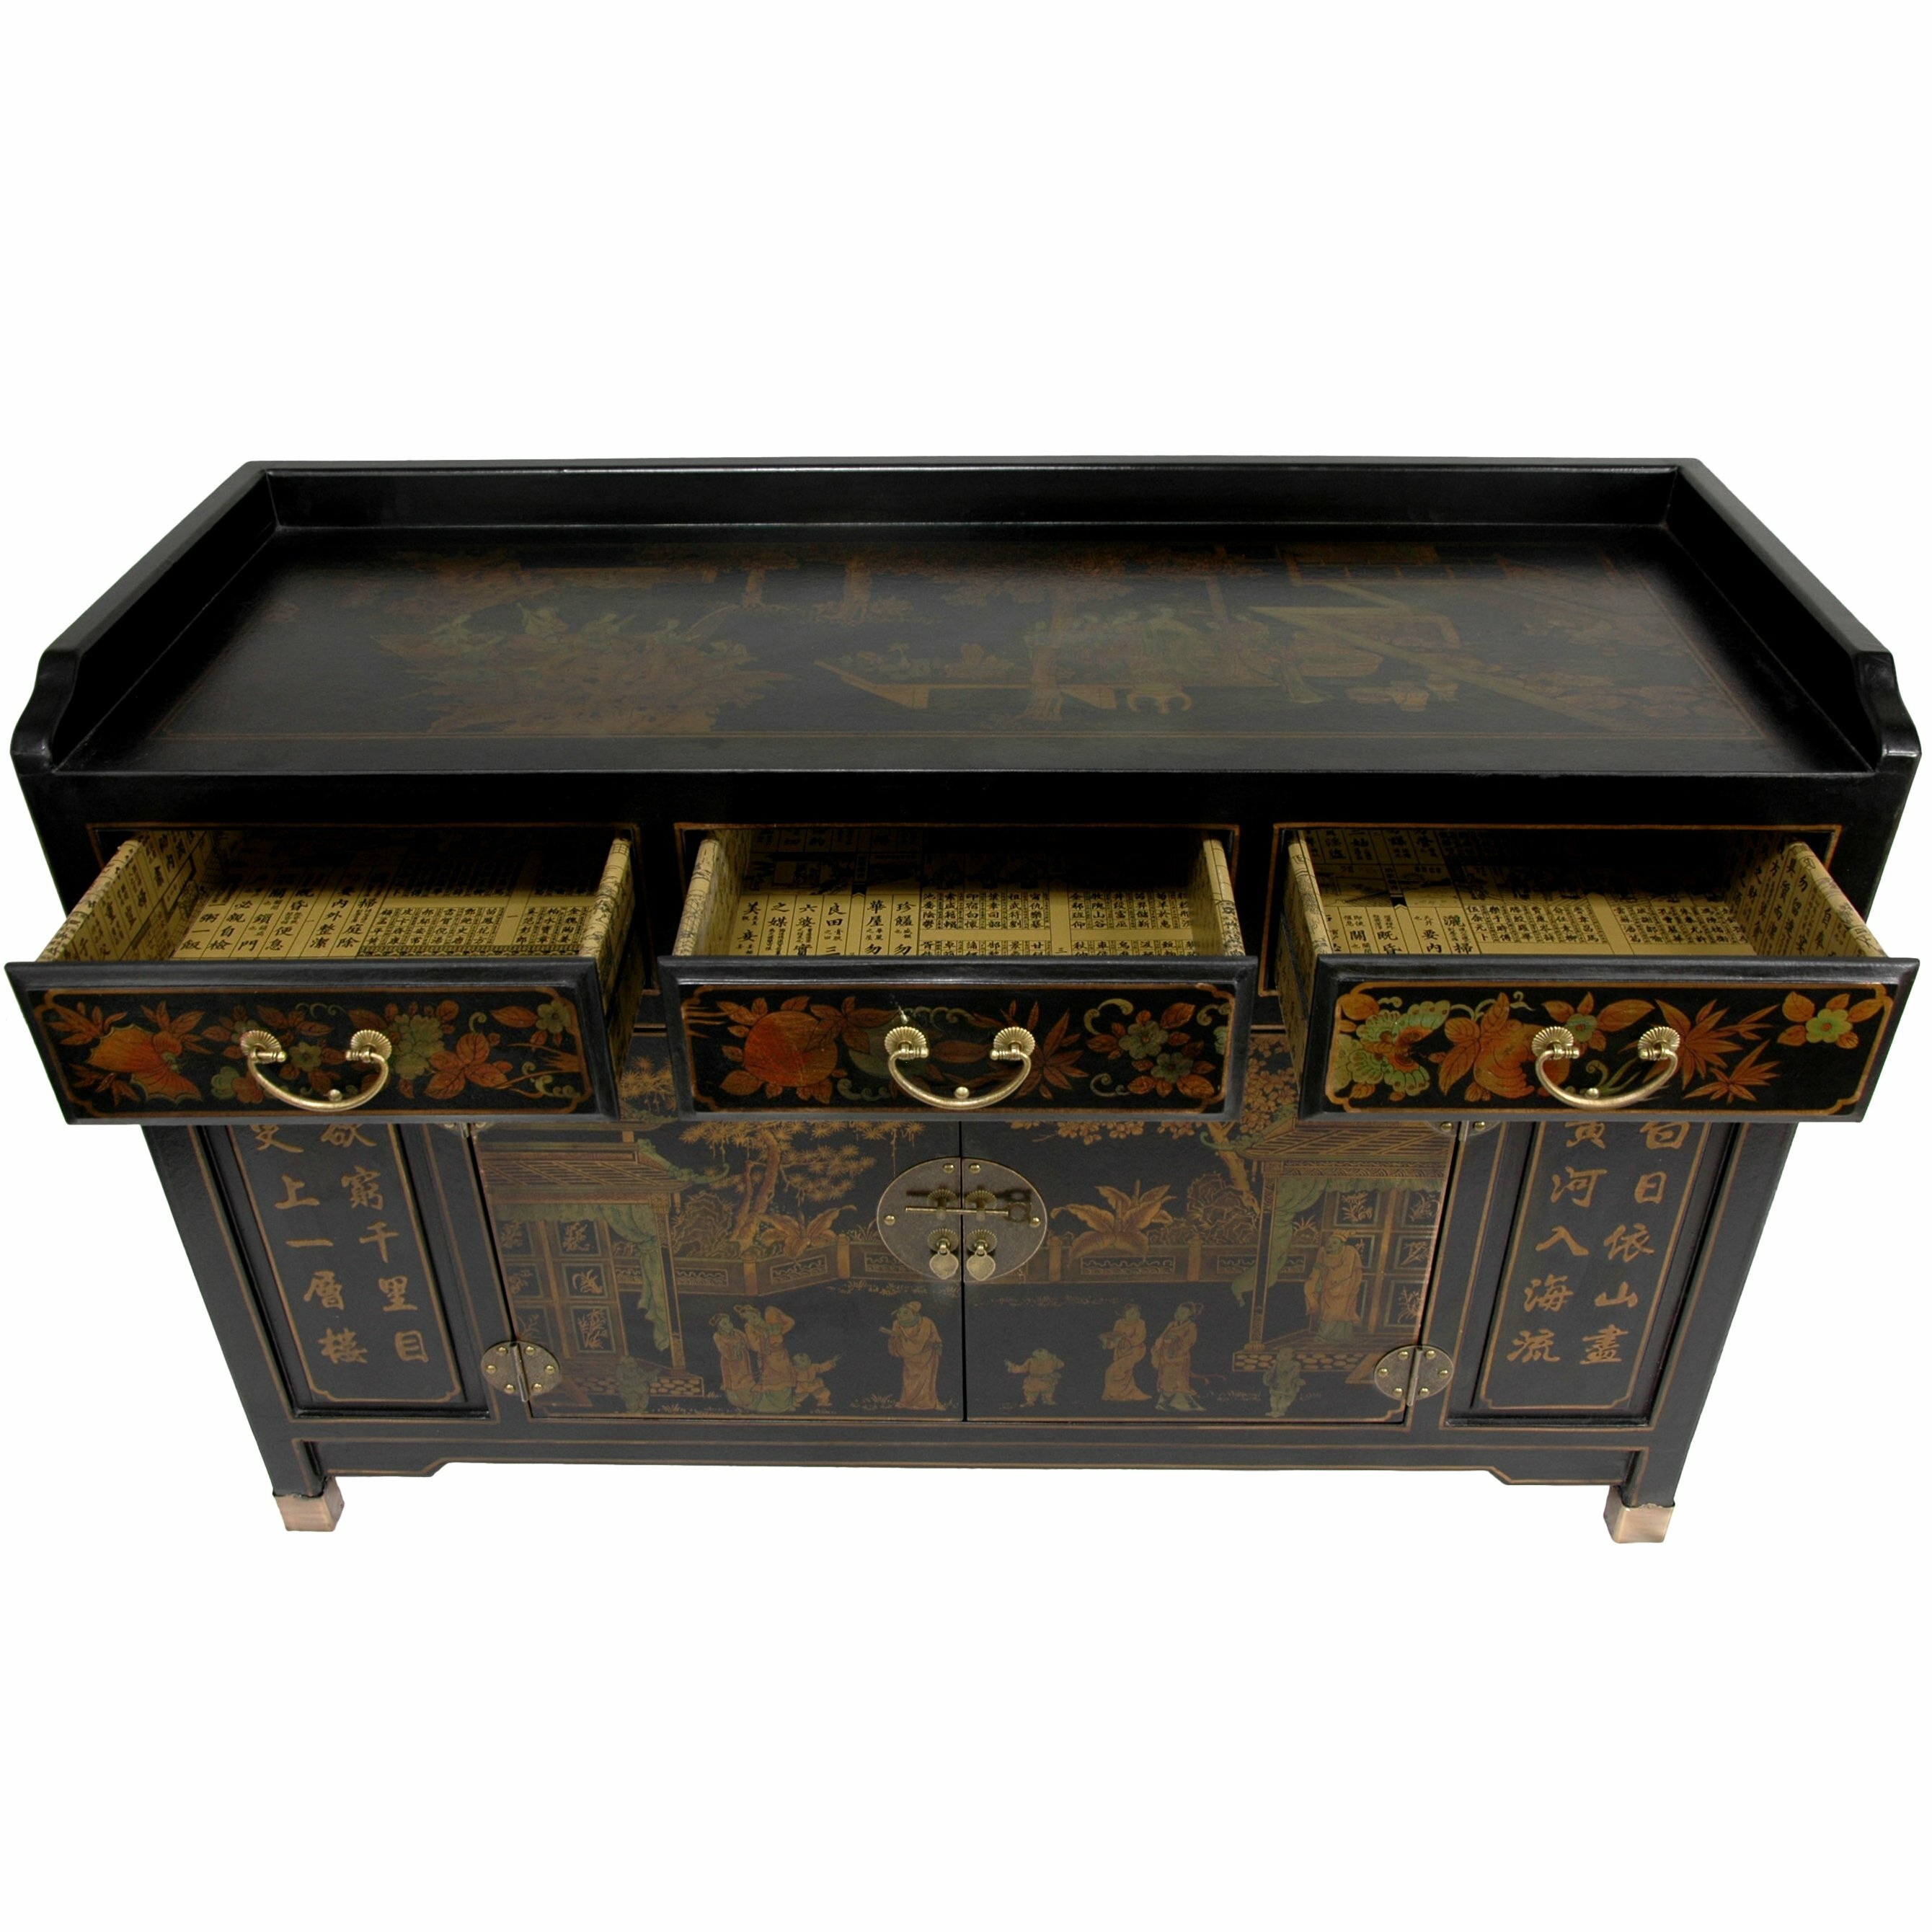 Oriental furniture buffet table reviews wayfair for I furniture reviews